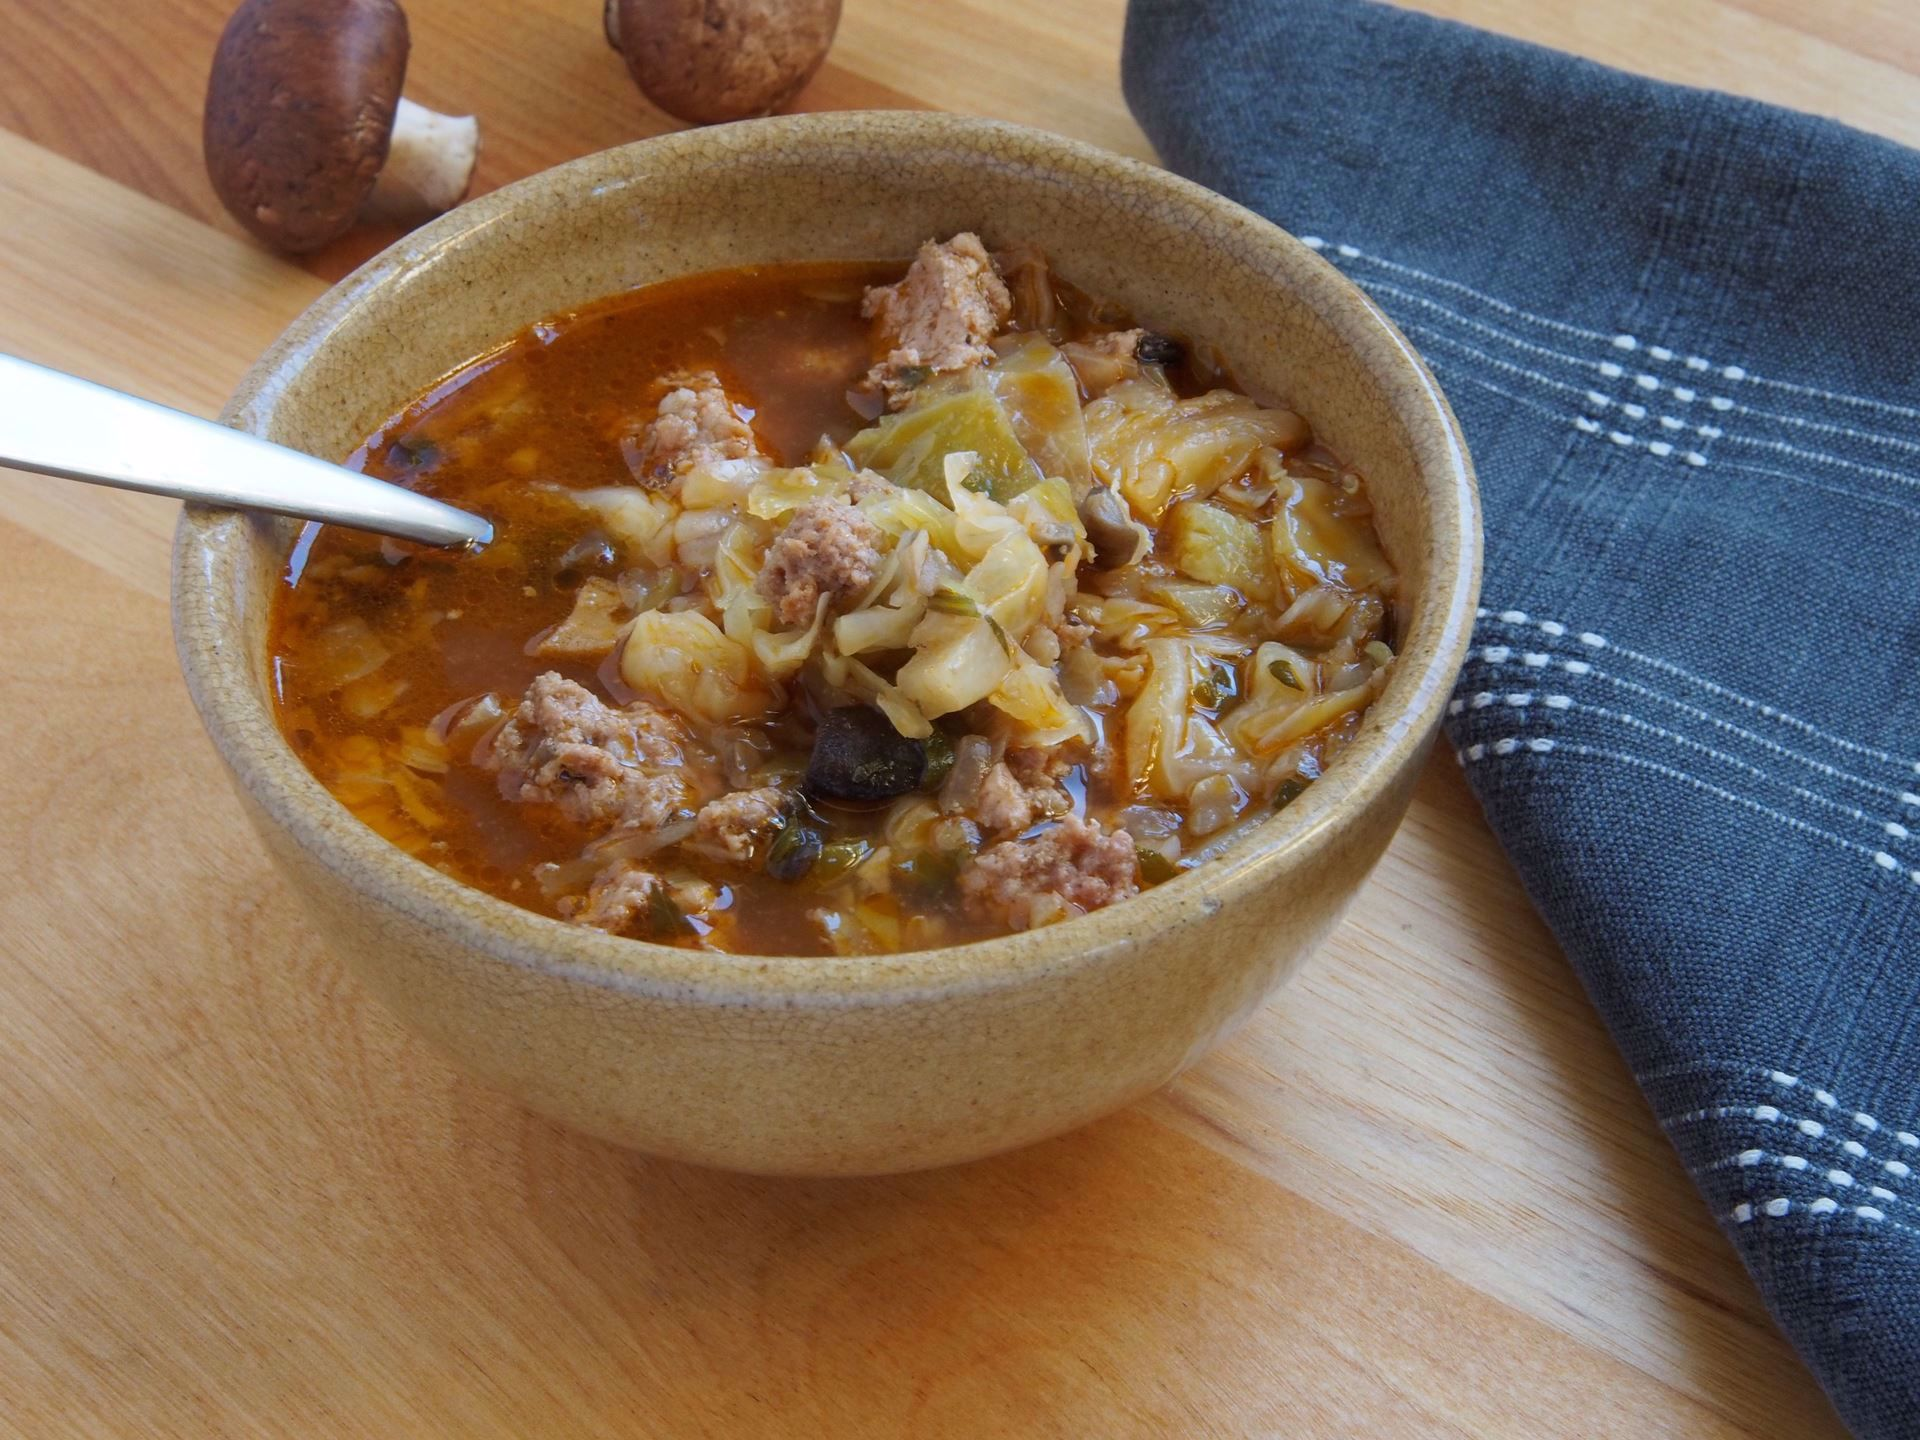 Picture of 22 oz -- Mushroom, Sausage and Cabbage Soup